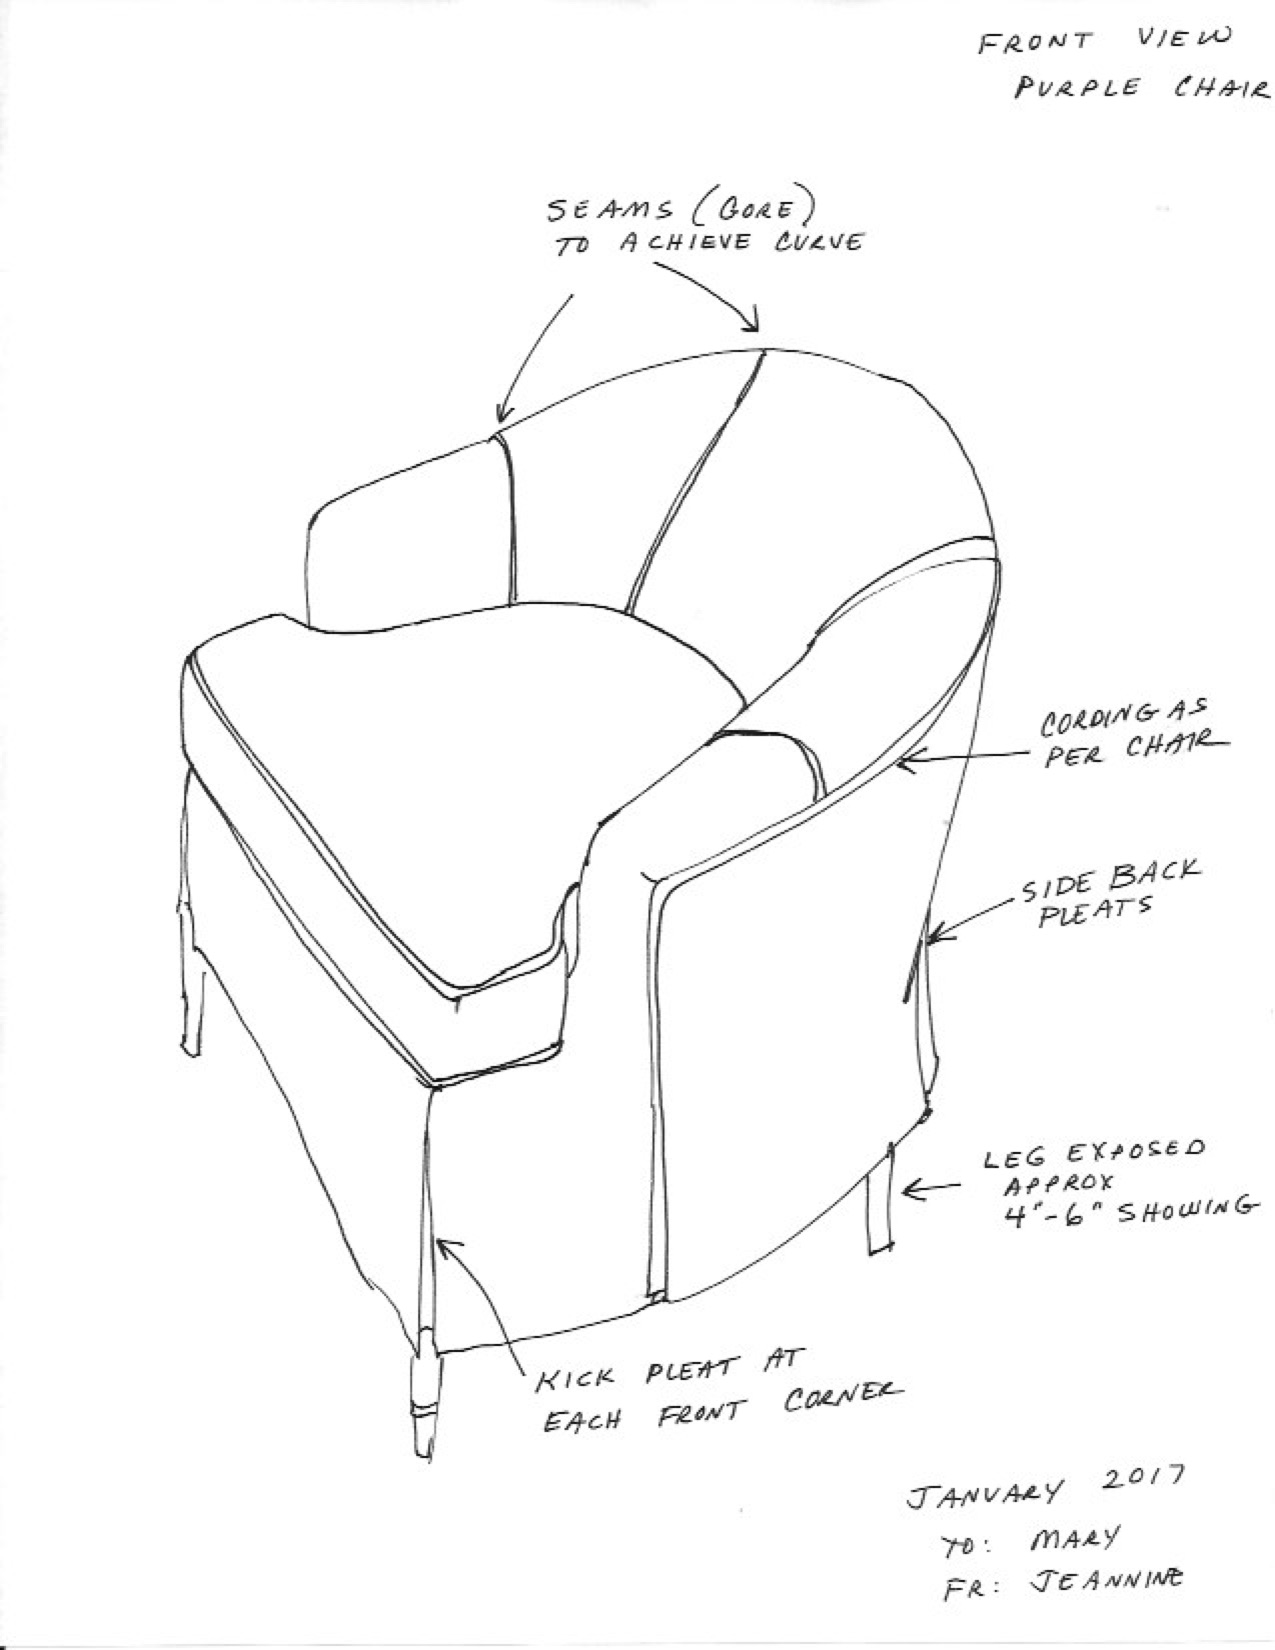 Mary Purple Chair Front.jpg